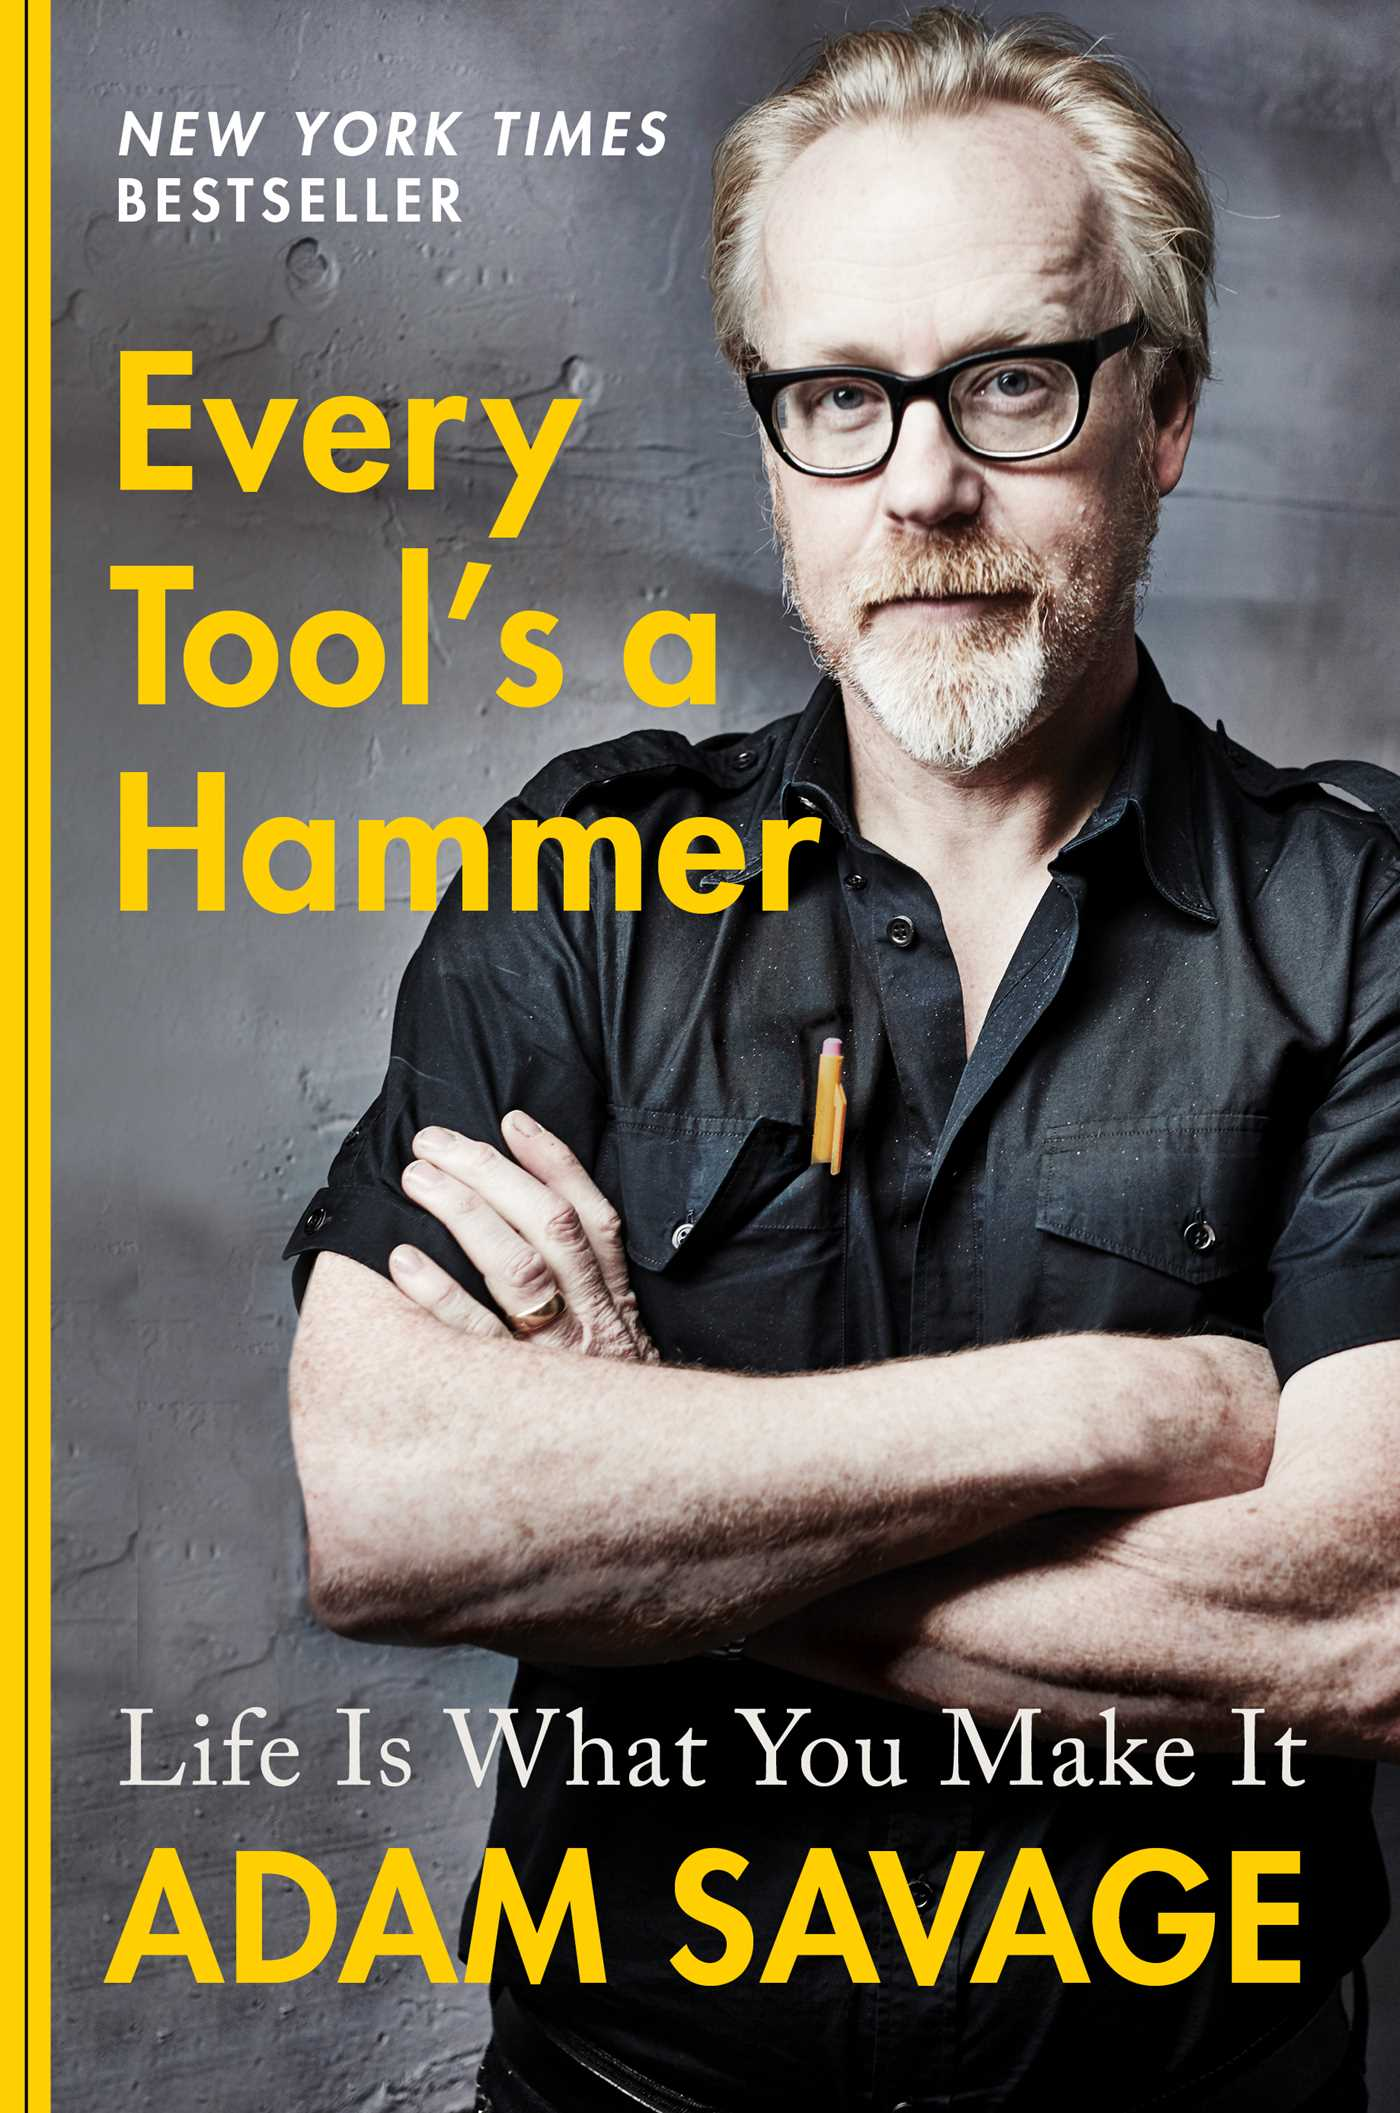 Animal Instincts Iii 1996 Watch Online every tool's a hammer | bookadam savage | official